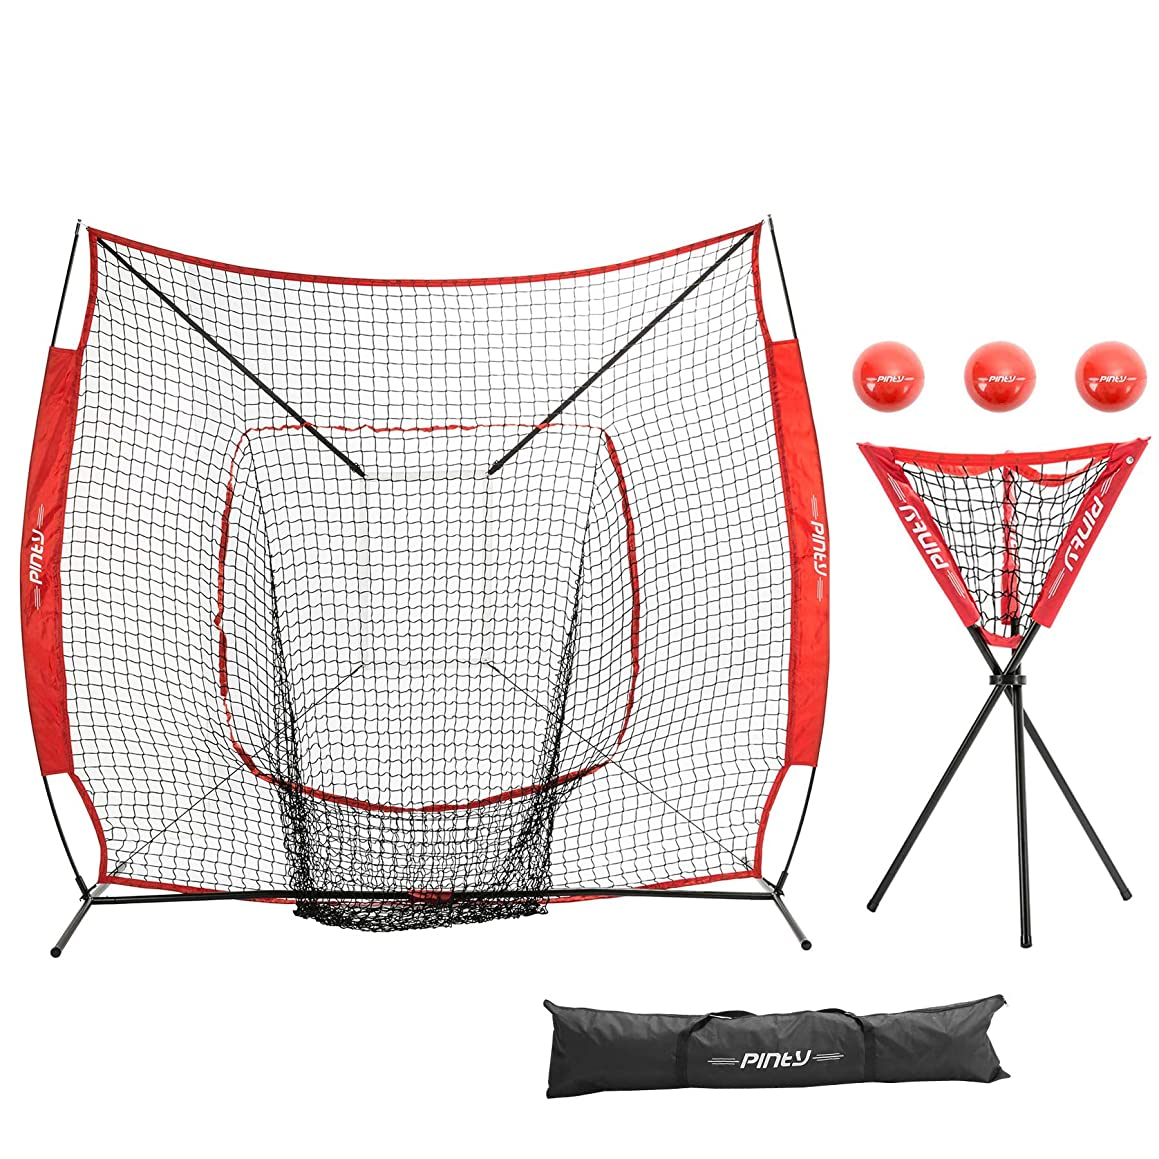 Pinty Baseball and Softball Practice Net 7'×7' Portable Hitting Batting Training Net with Carry Bag & Metal Frame + Ball Caddy + Weighted Training Balls